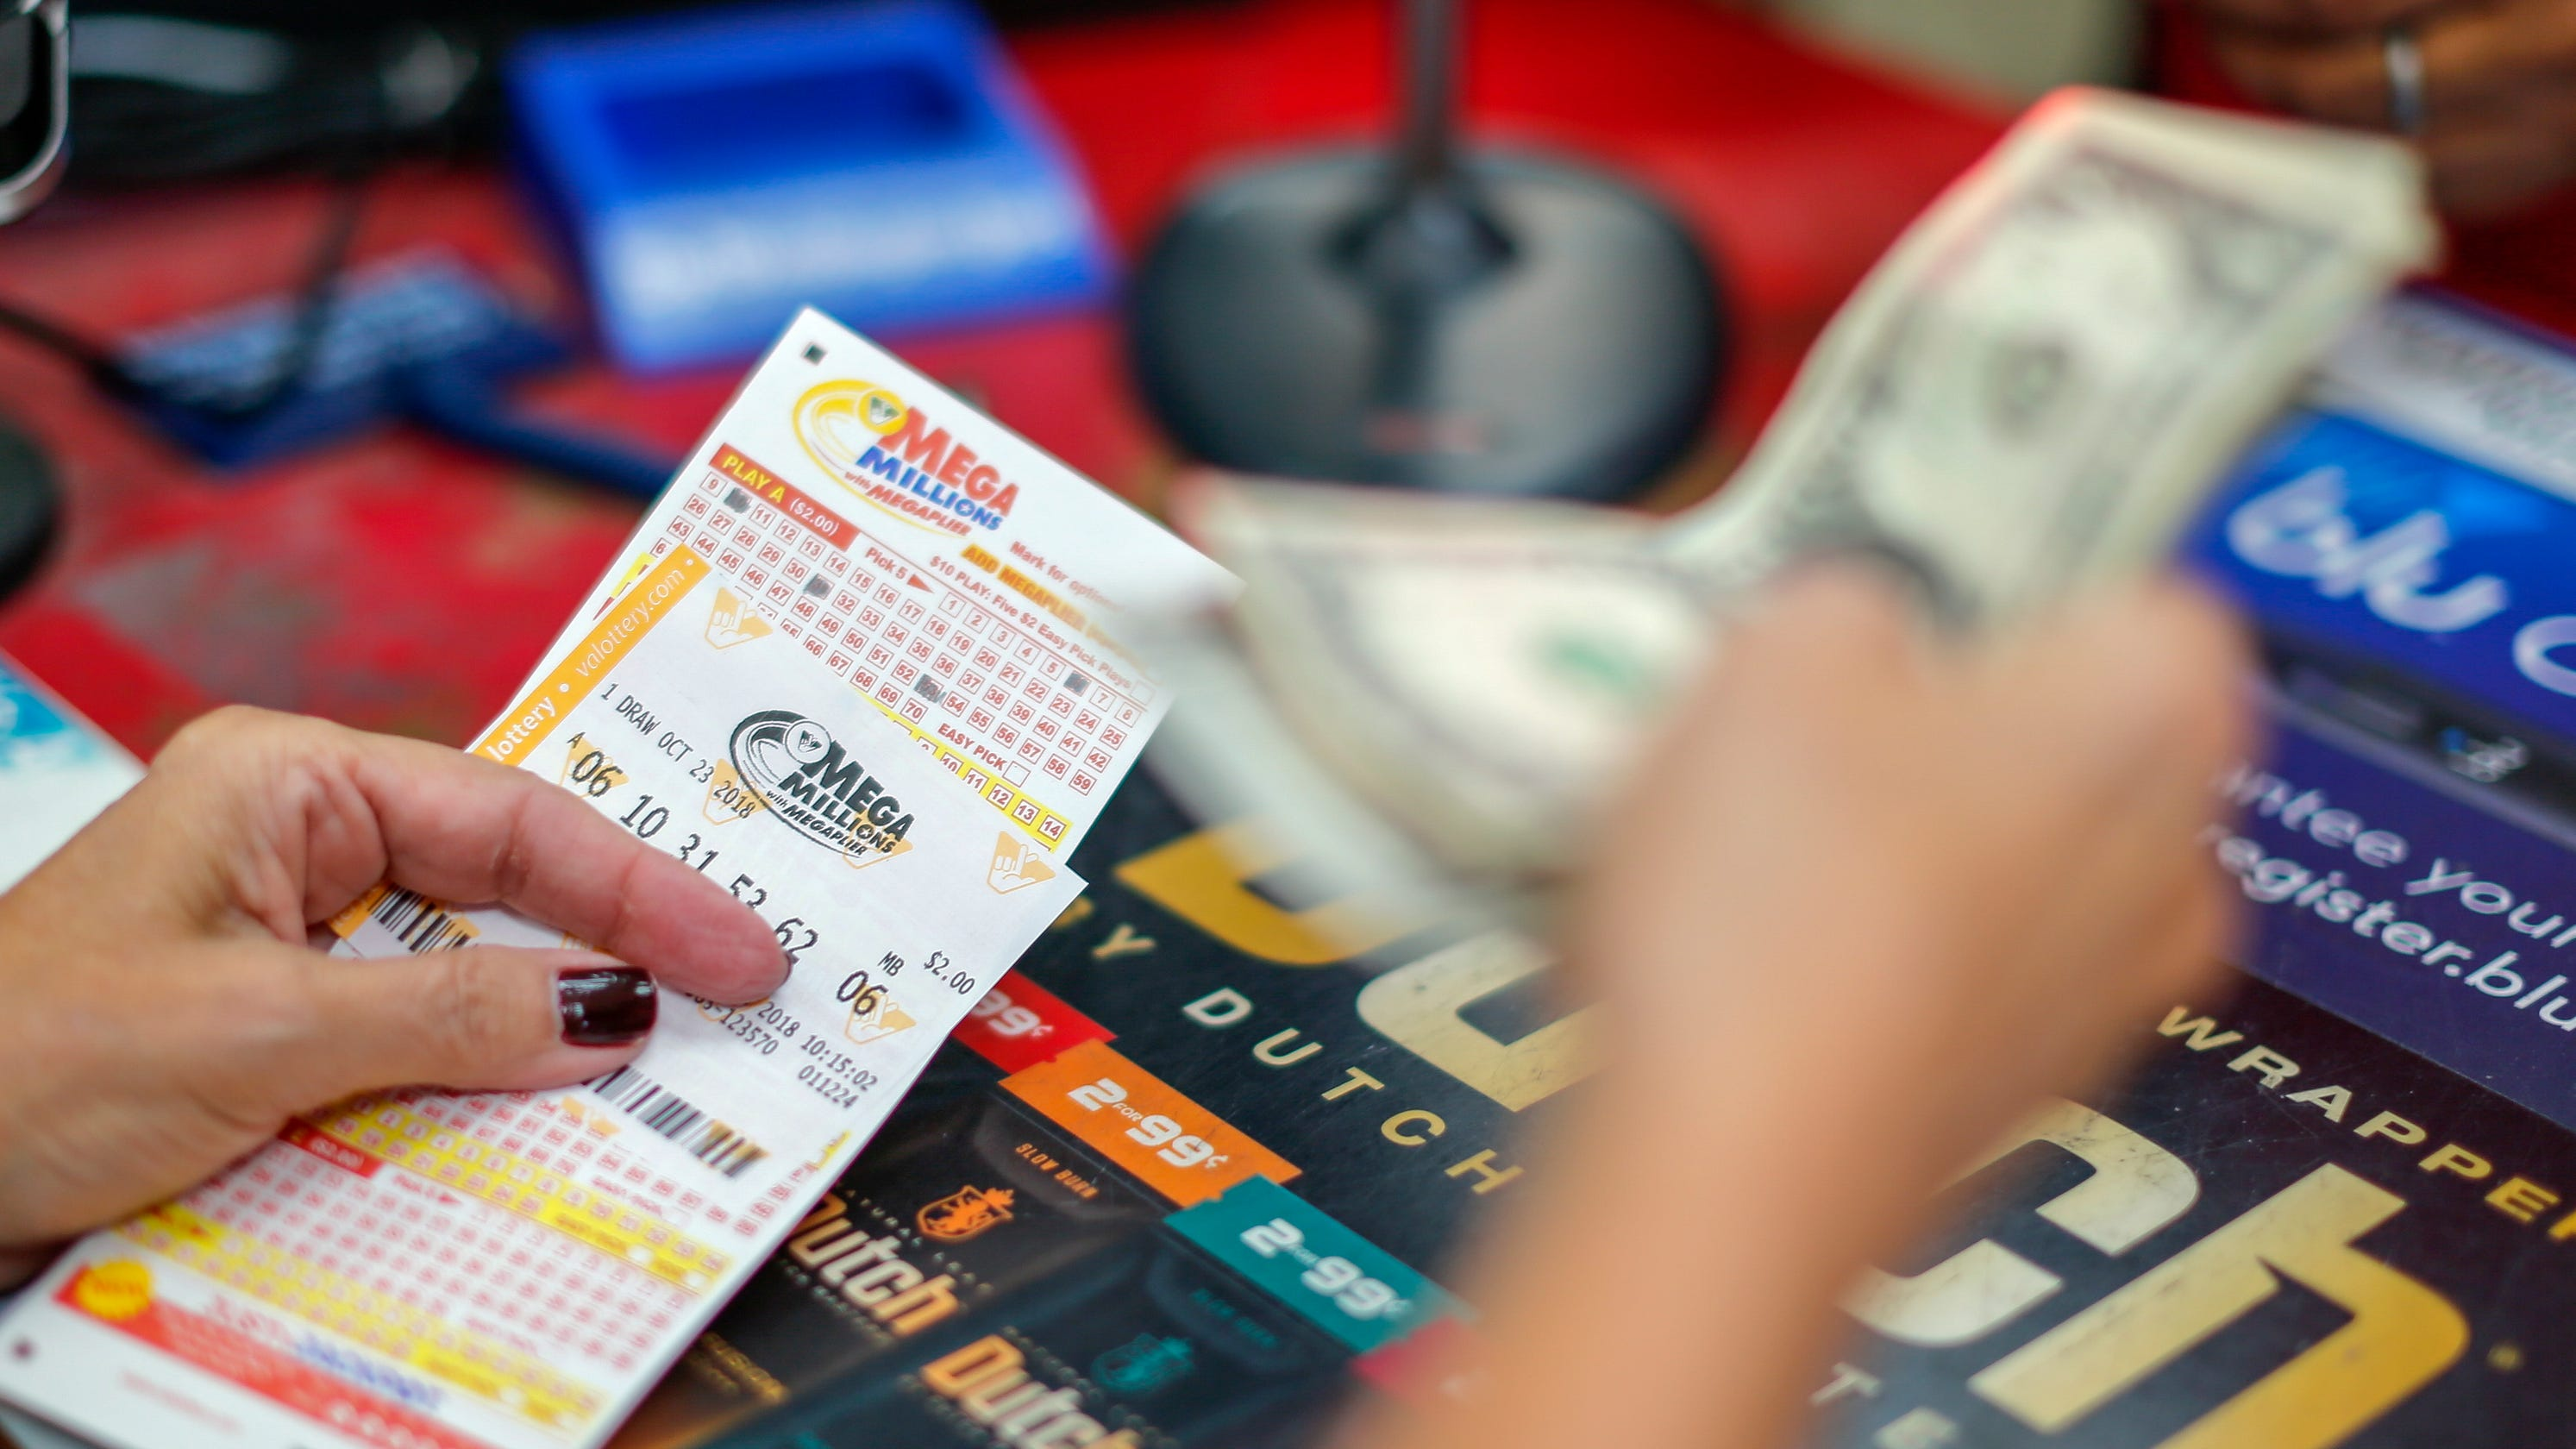 Office lottery pool lawsuit: Read about 2013 Indiana pool